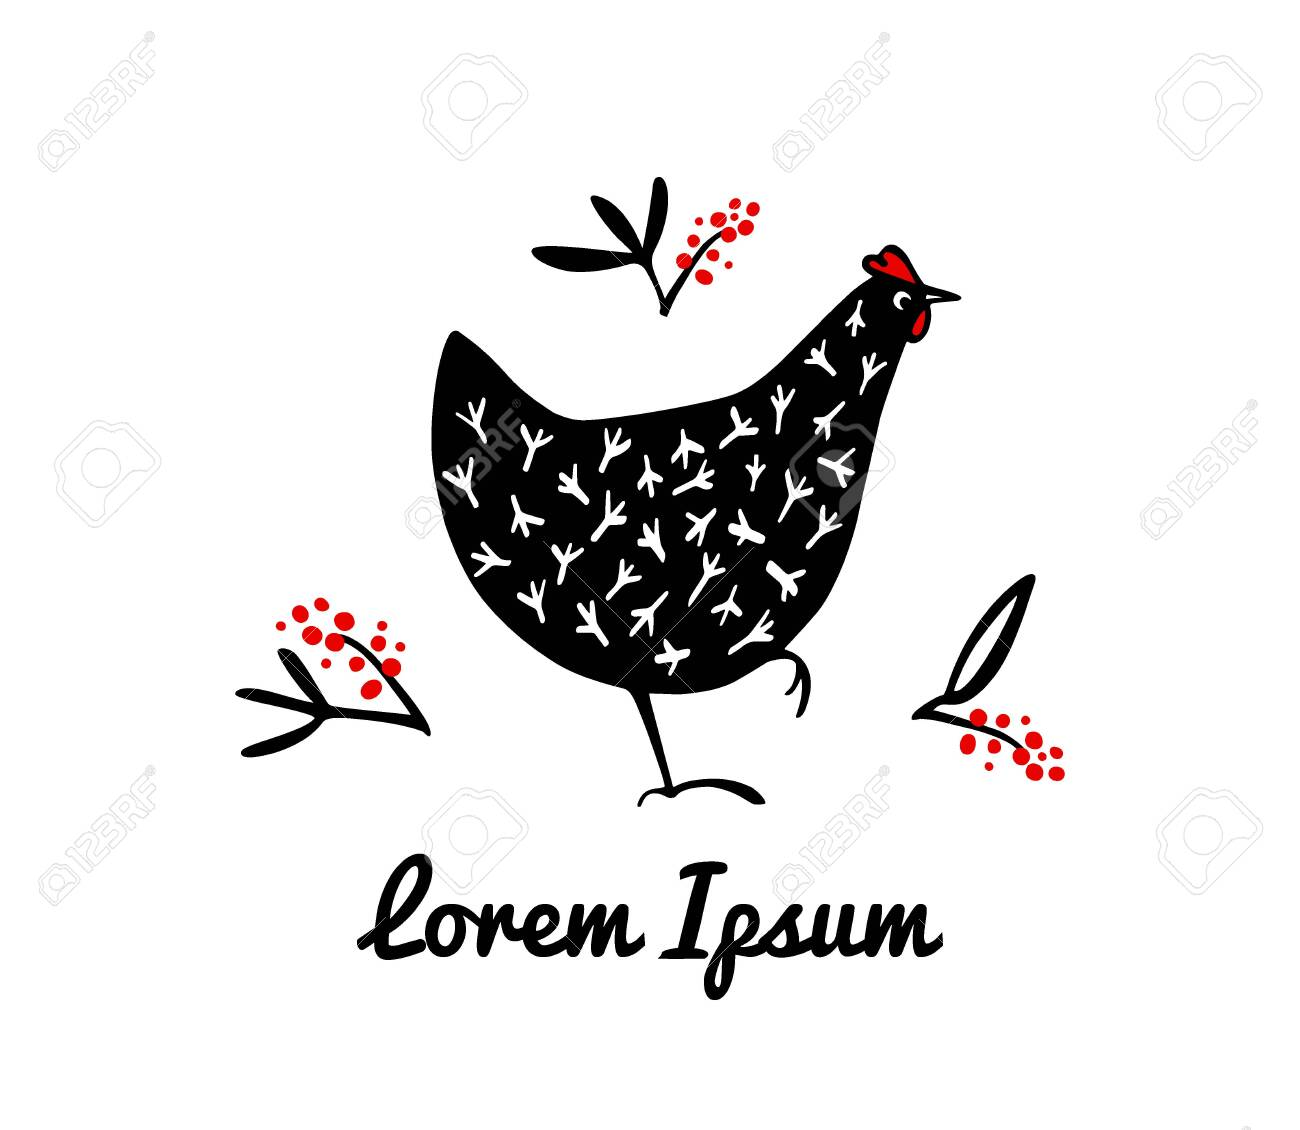 Vector illustration of hand drawn speckled hens with floral elements. Beautiful ink drawing, abstract design elements. Perfect elements for food or farming design. - 134559213